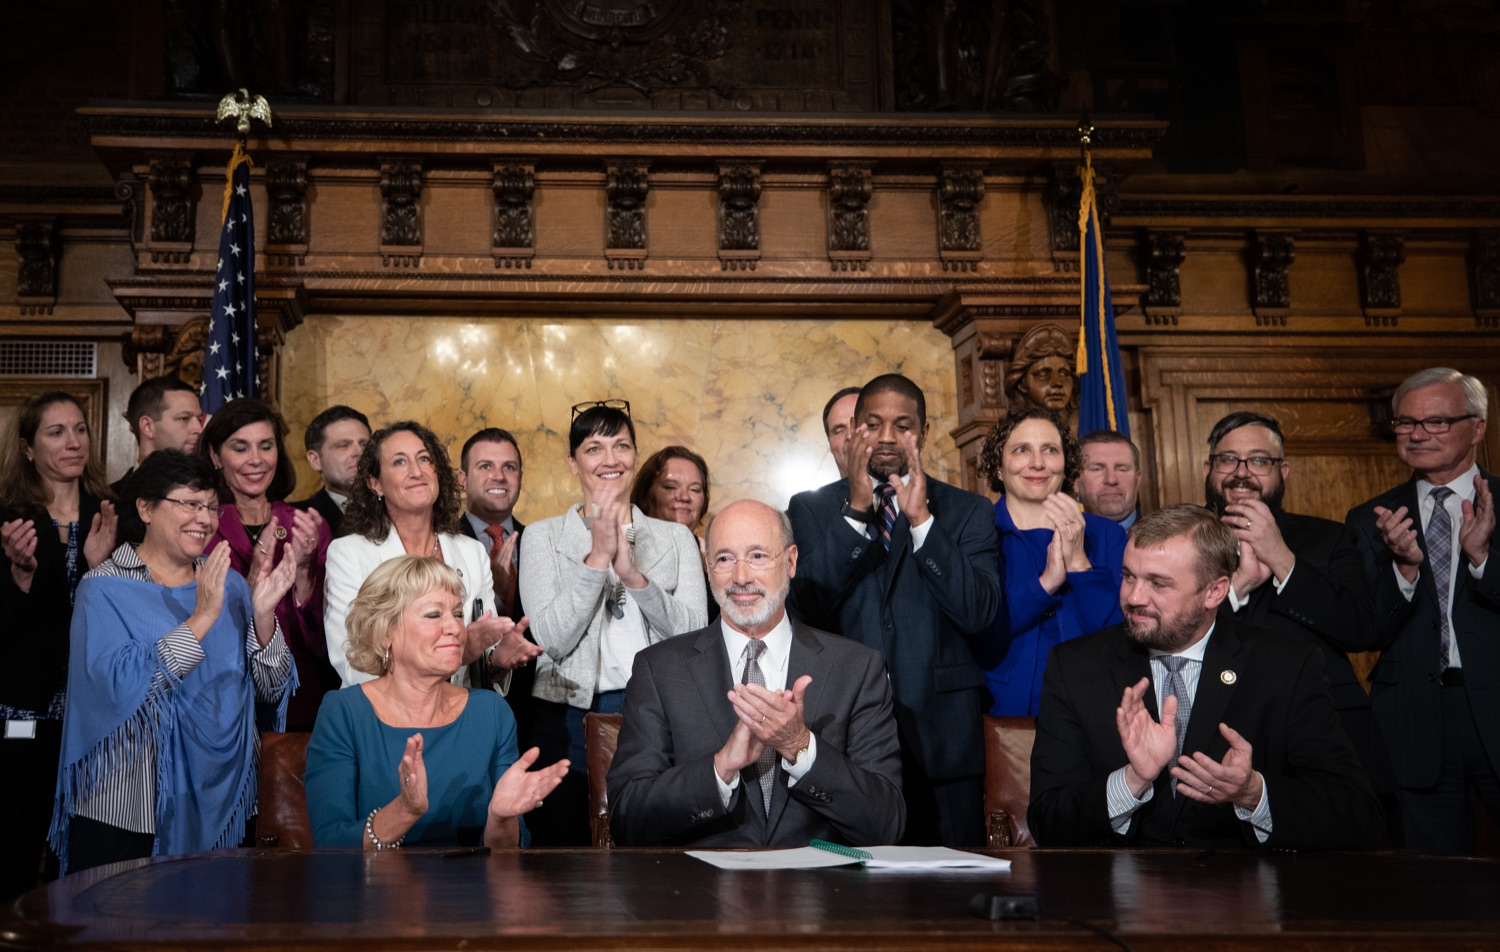 "<a href=""http://filesource.abacast.com/commonwealthofpa/photo/17554_gov_voter_reform_bill_dz_008.jpg"" target=""_blank"">⇣ Download Photo<br></a>Harrisburg, PA  Governor Tom Wolf signs the Election Reform Bill. Governor Wolf made voting more convenient and secure by signing Act 77 of 2019, the most significant improvement to Pennsylvanias elections in more than 80 years. The bipartisan compromise legislation takes effect for the April 2020 primary election and makes Pennsylvania a national leader with voter-friendly election reforms."